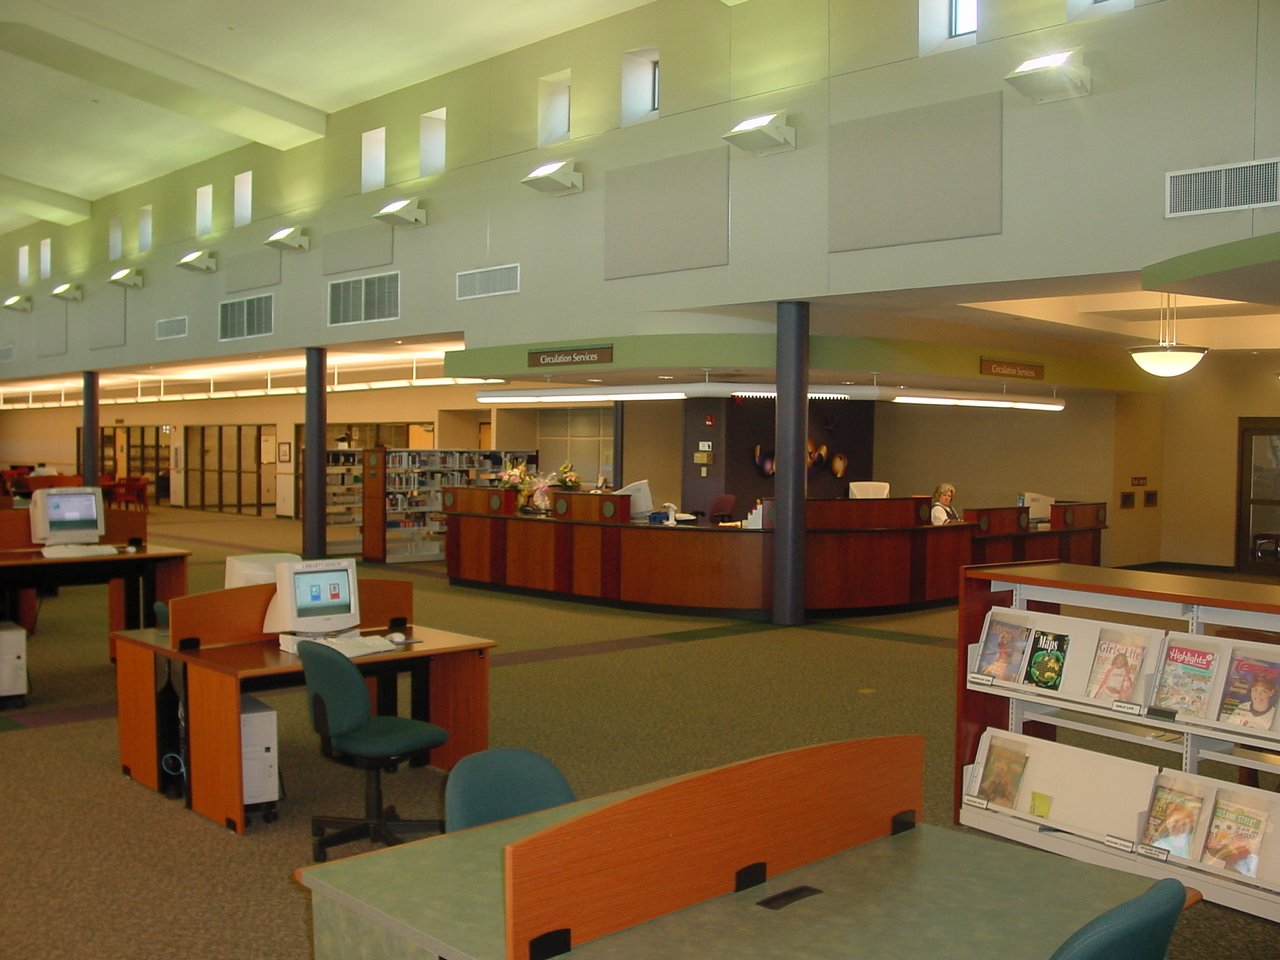 A view of the circulation desk from the northwest